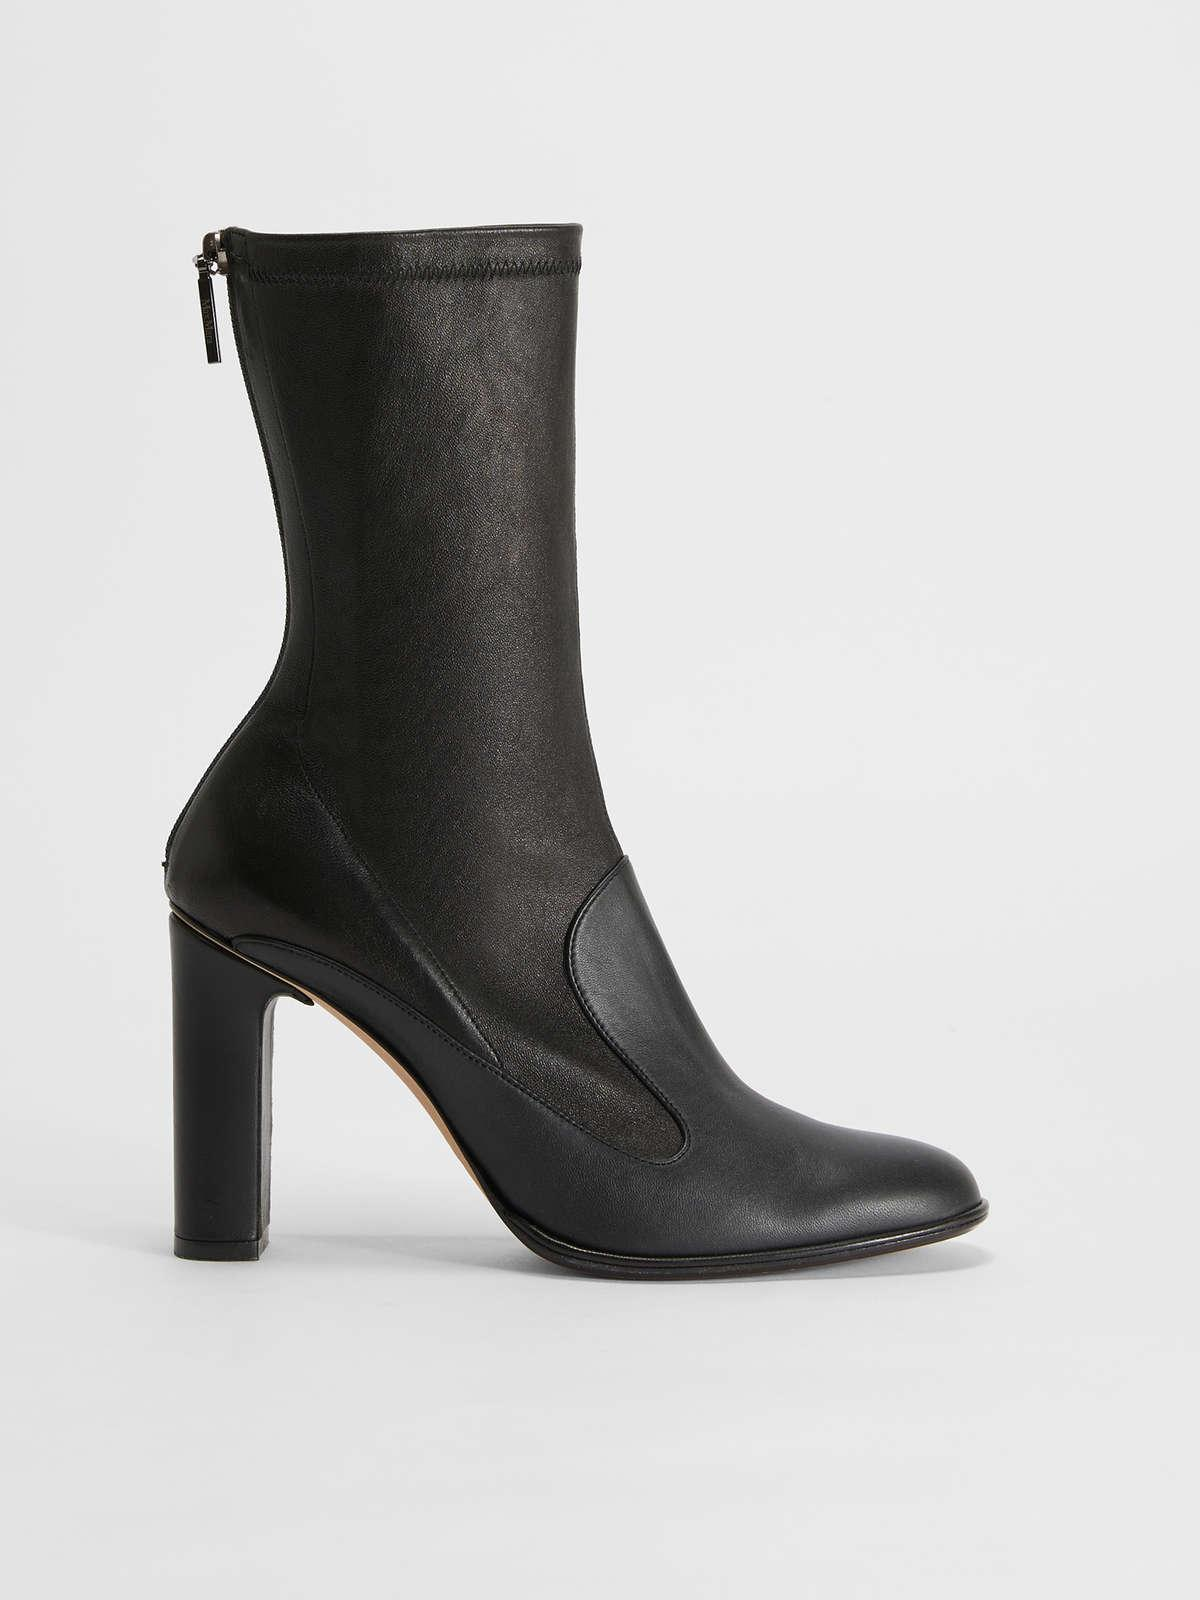 Womens Max Mara Ankle Boots And Boots | Nappa Leather Ankle Boots Black